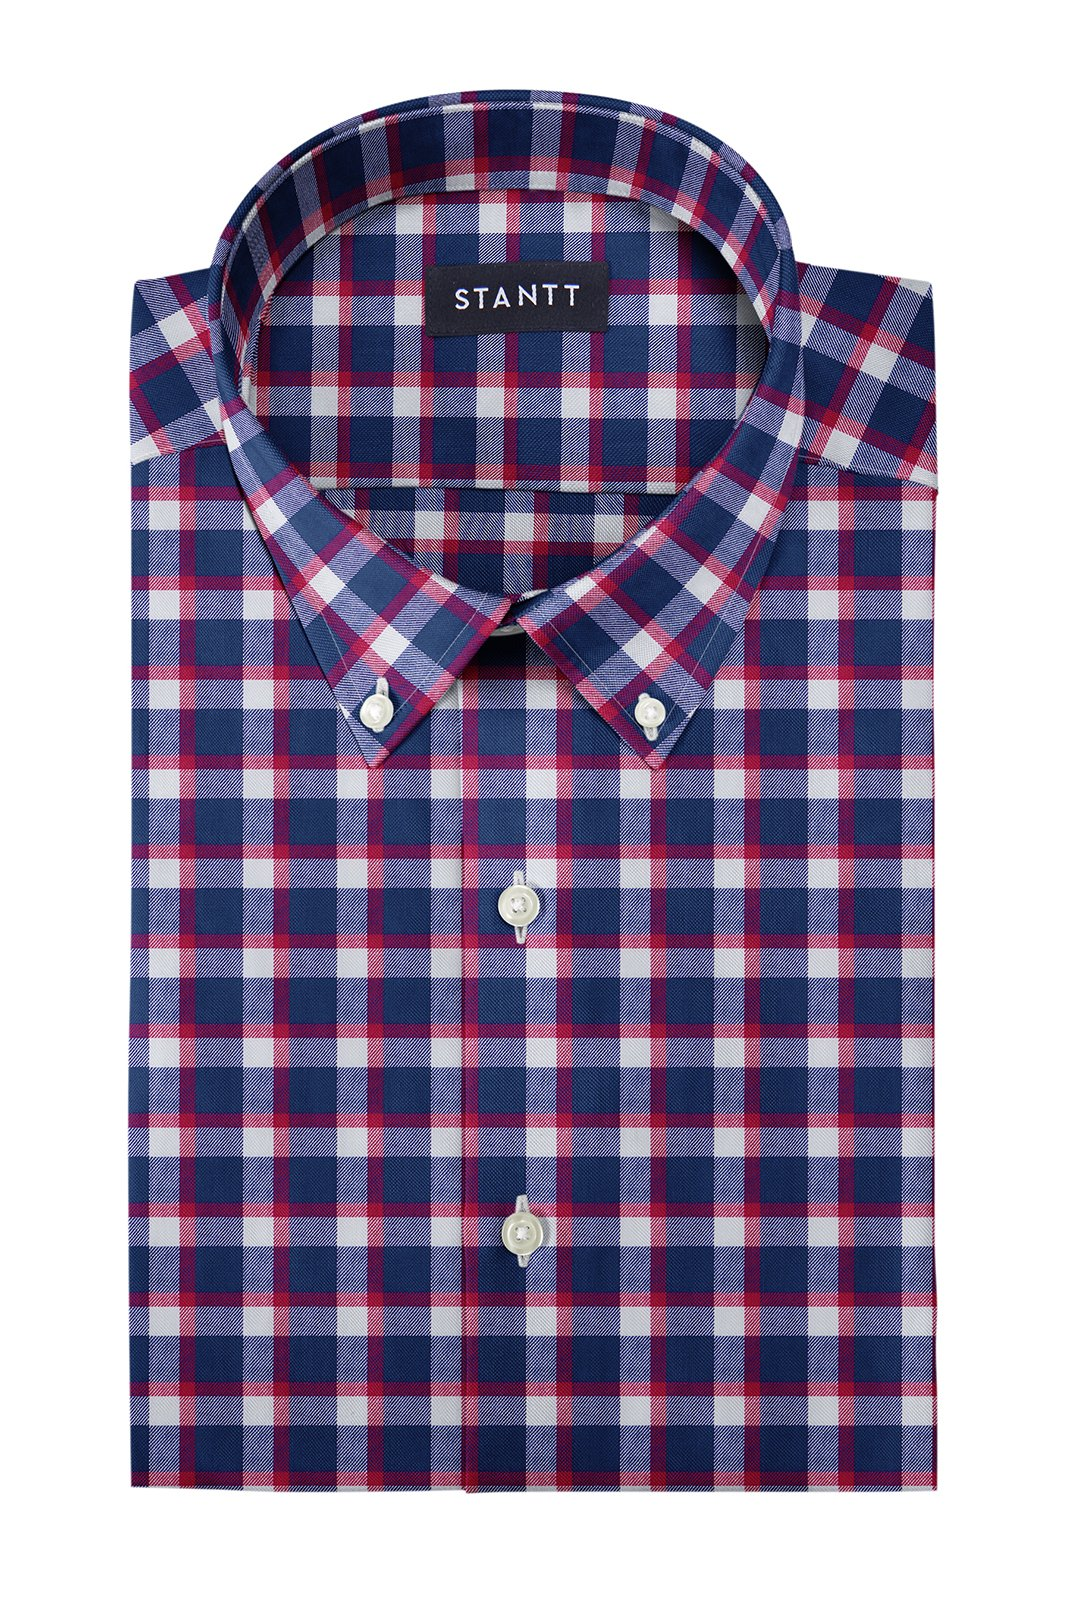 906372811249 Shirts | Red Accented Check Flannel: Button-Down Collar, Long Sleeve ...